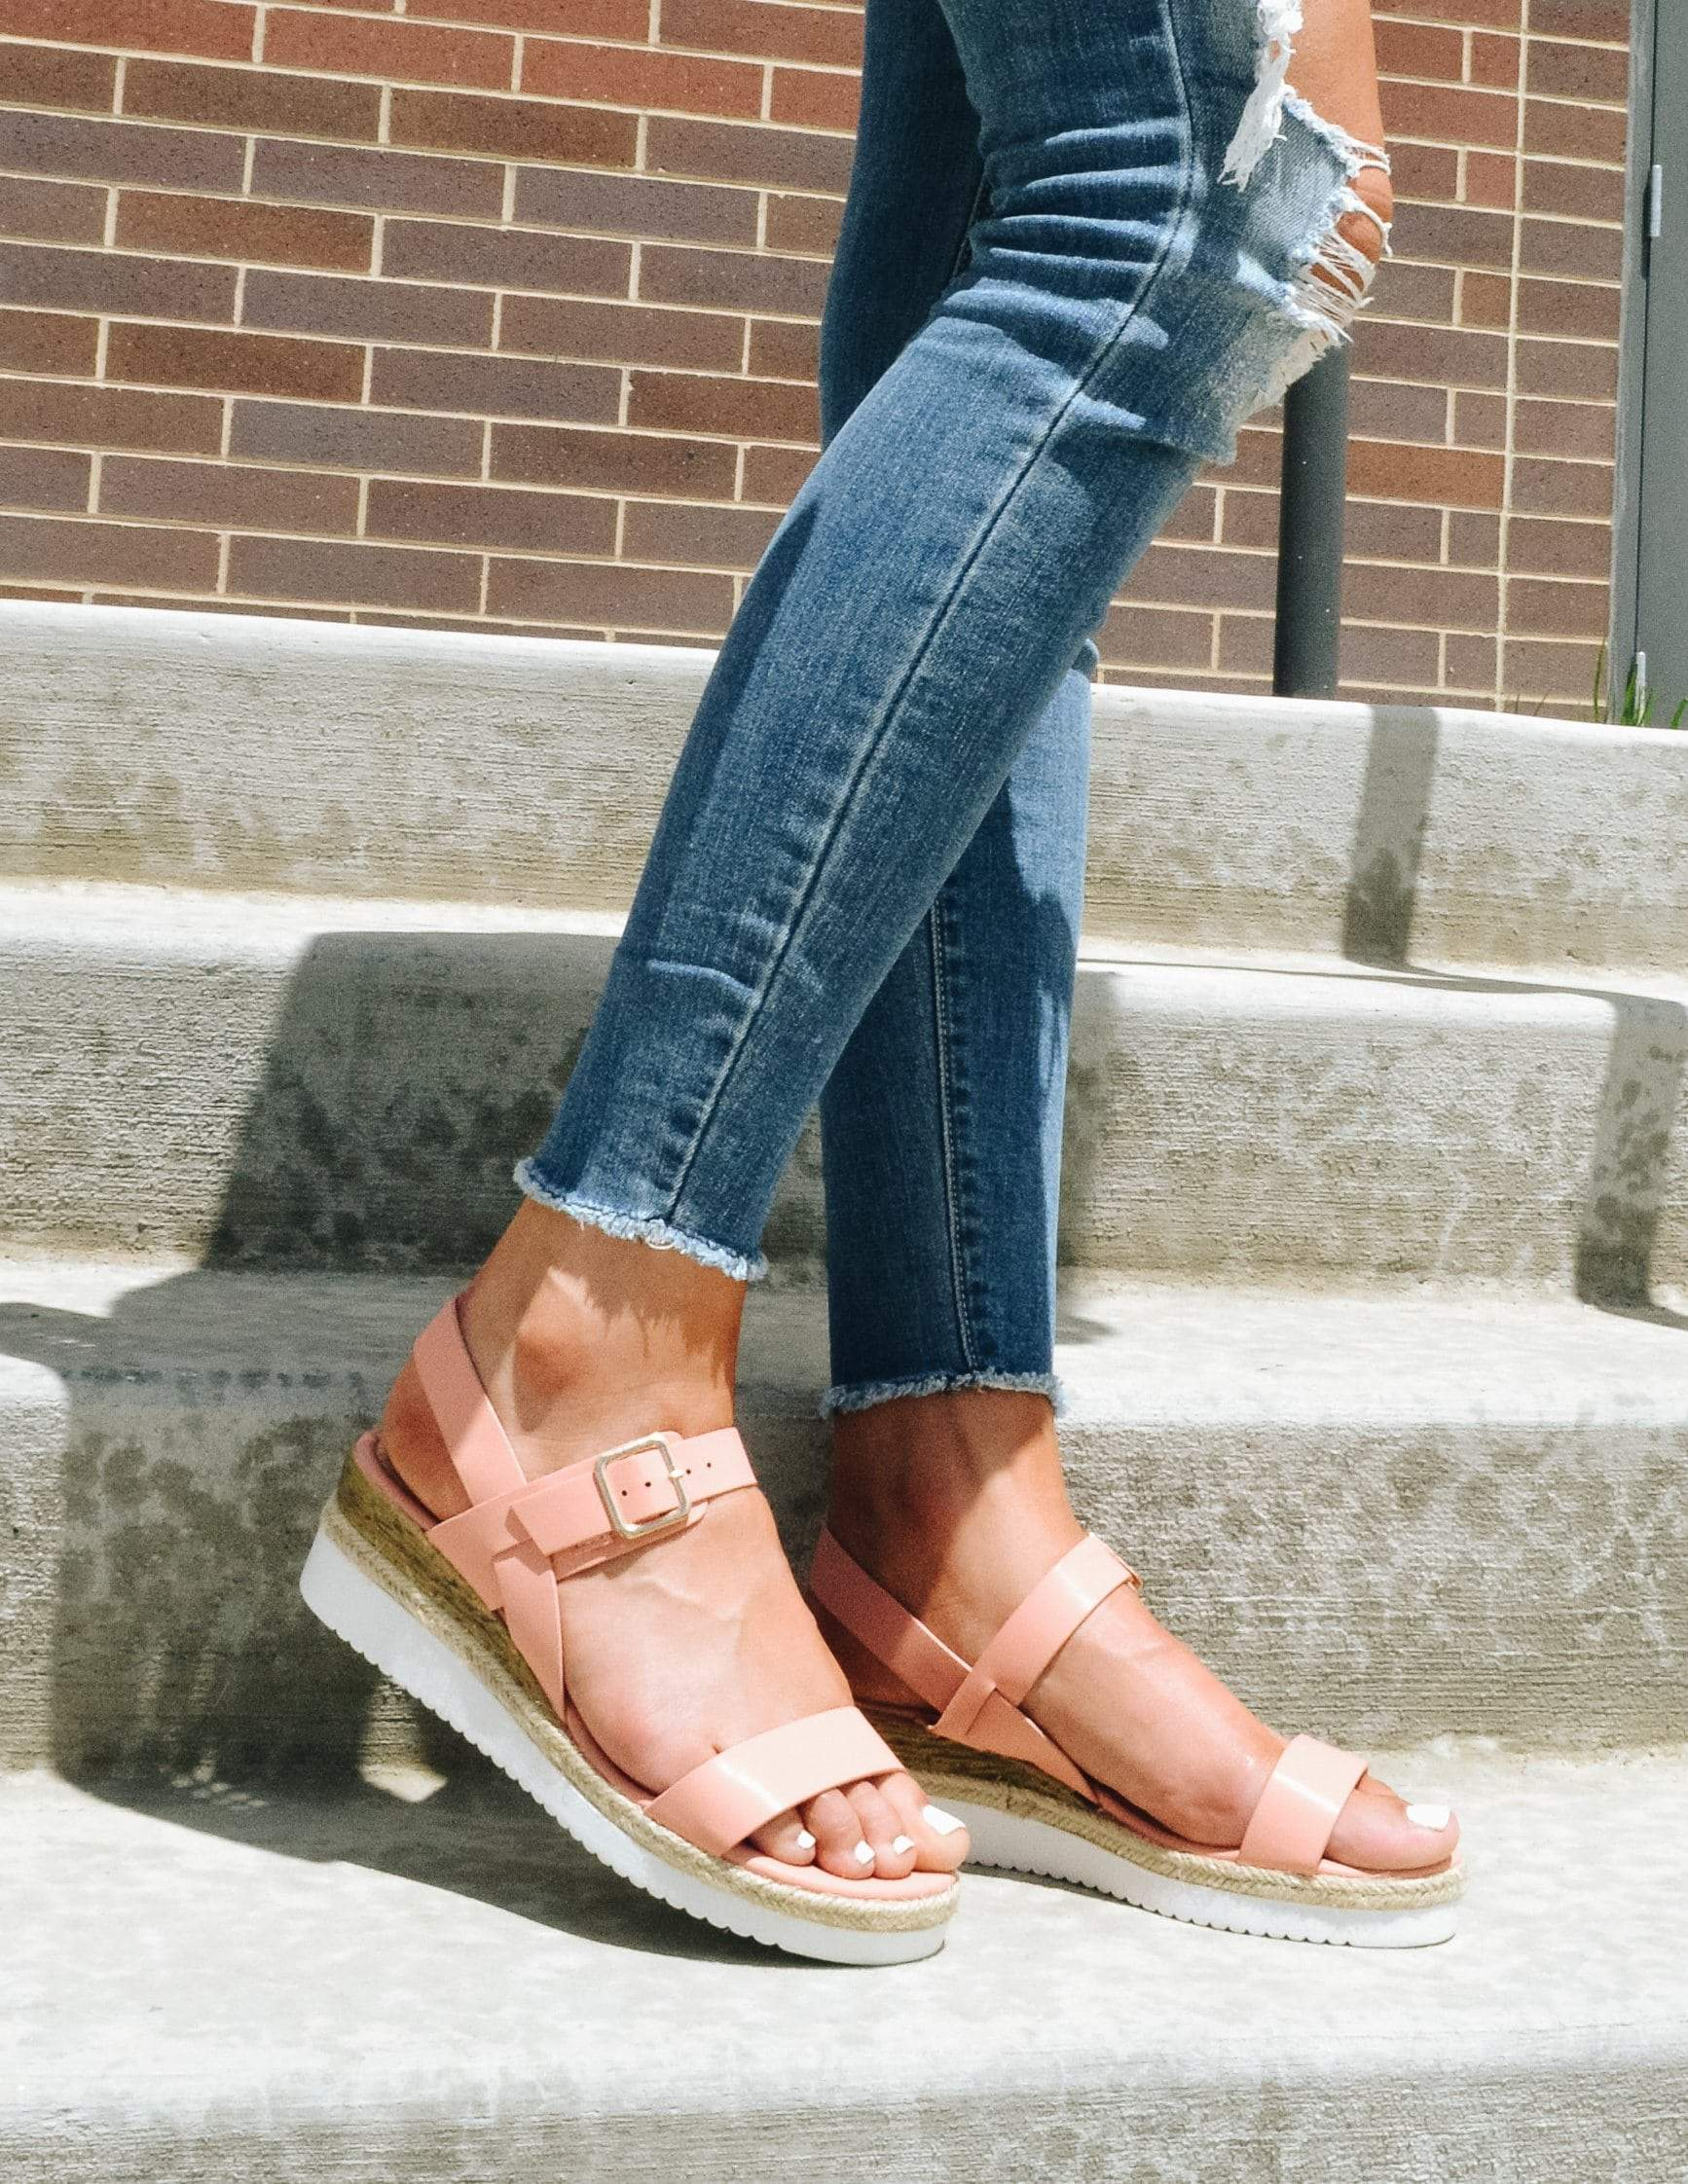 Model standing showing off pink platform wedge sandals - elle bleu